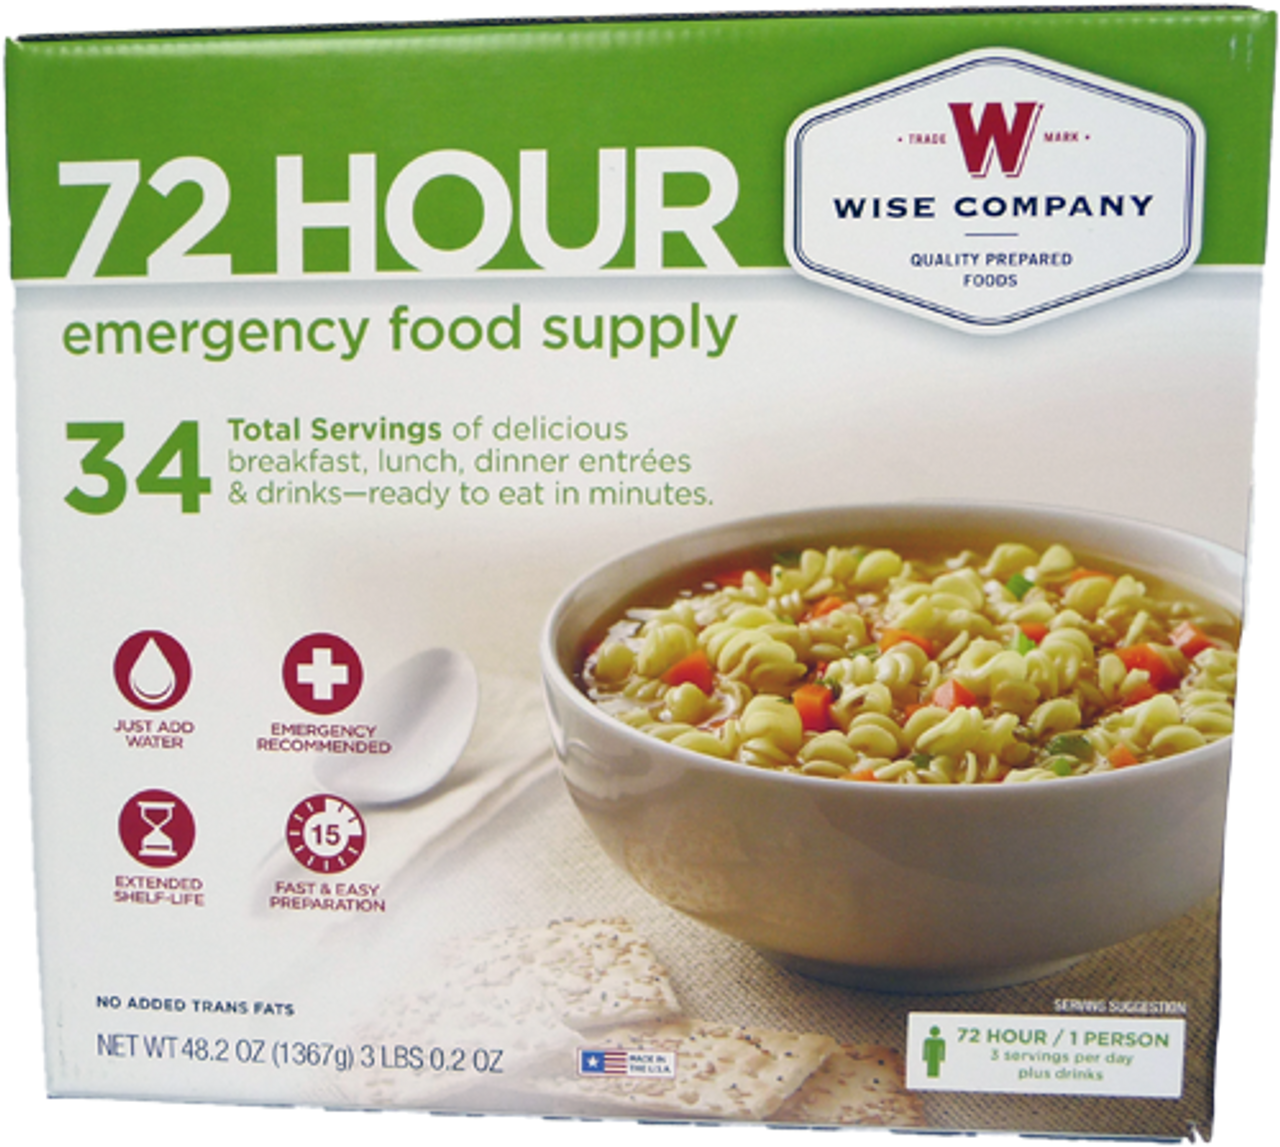 Wise Foods 72 Hour Emergency Food Supply for 1 Person